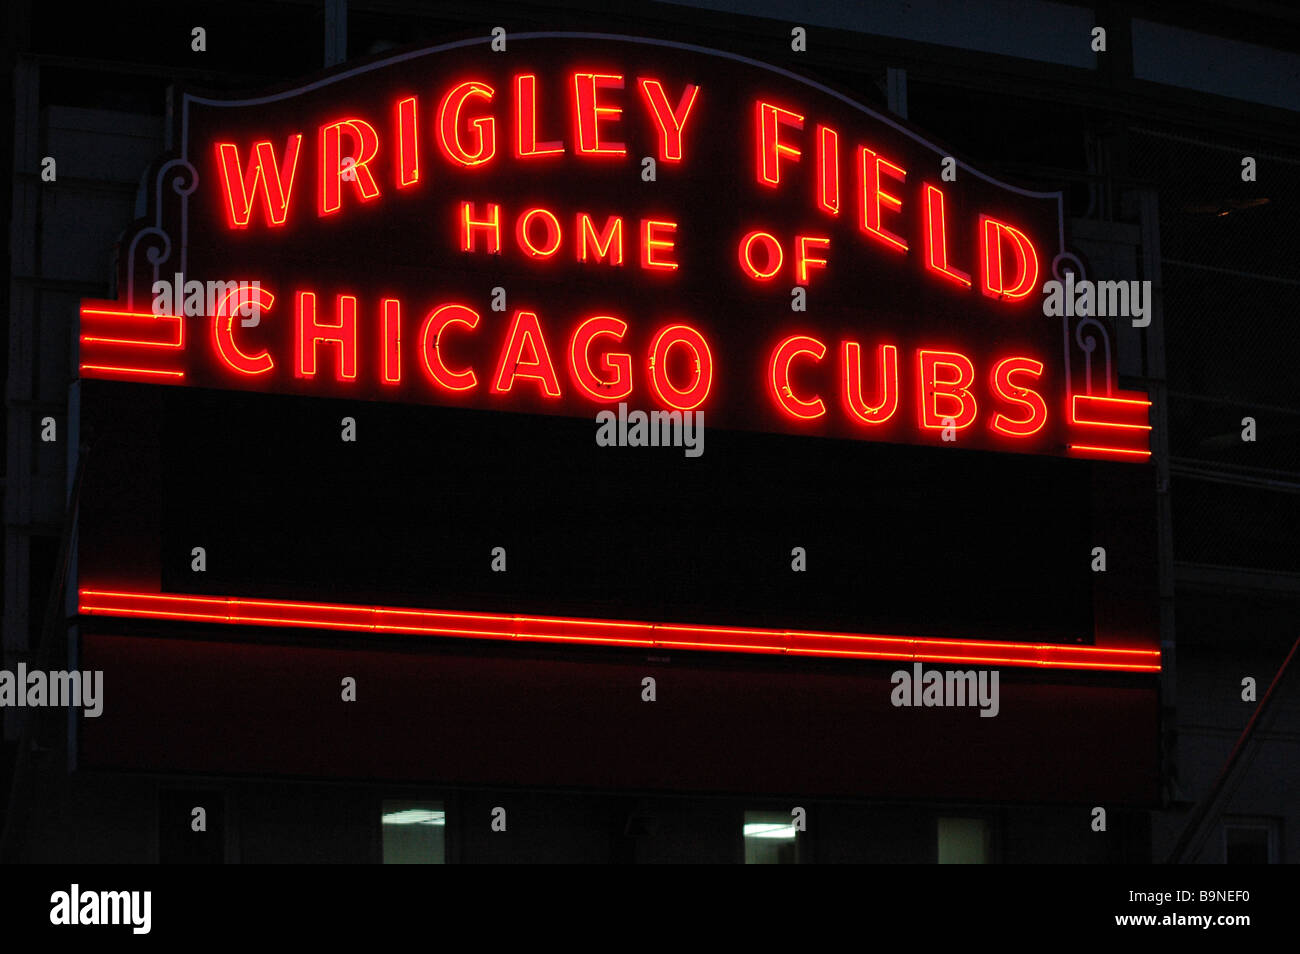 The wrigley field sign in chicago illinois stock photo 23214660 the wrigley field sign in chicago illinois buycottarizona Images